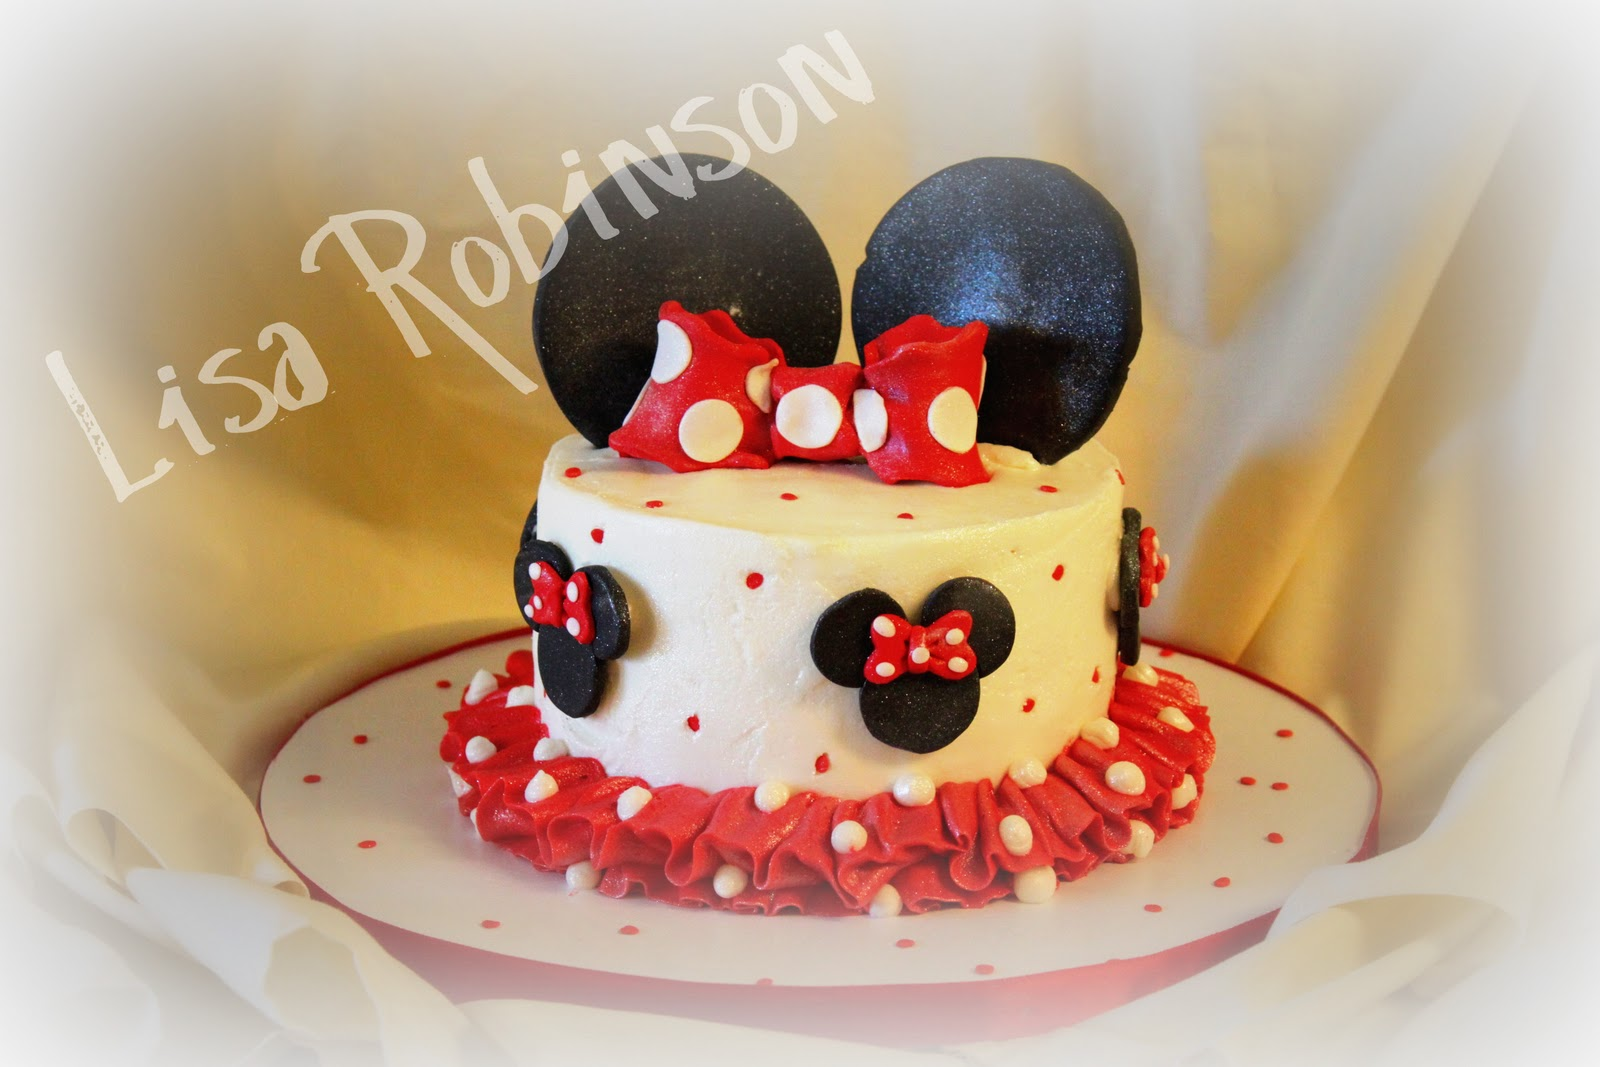 Pleasing Craftylillybargainbin Blogspot Com Minnie Mouse Birthday Funny Birthday Cards Online Alyptdamsfinfo